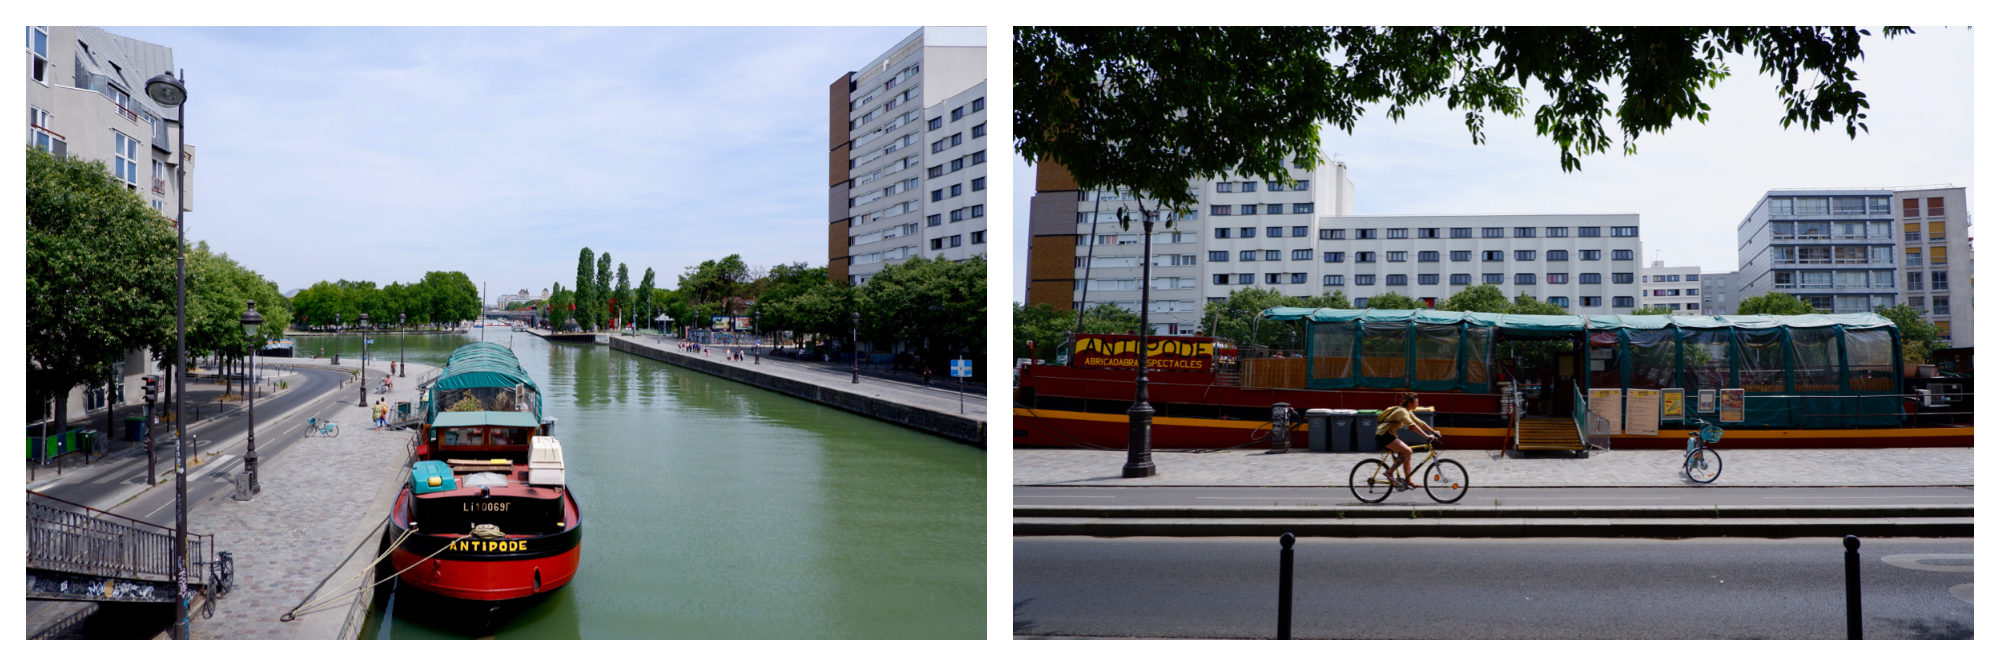 You will also find a number of barges with bars, theatres, clubs and even a bookshop on the canal.